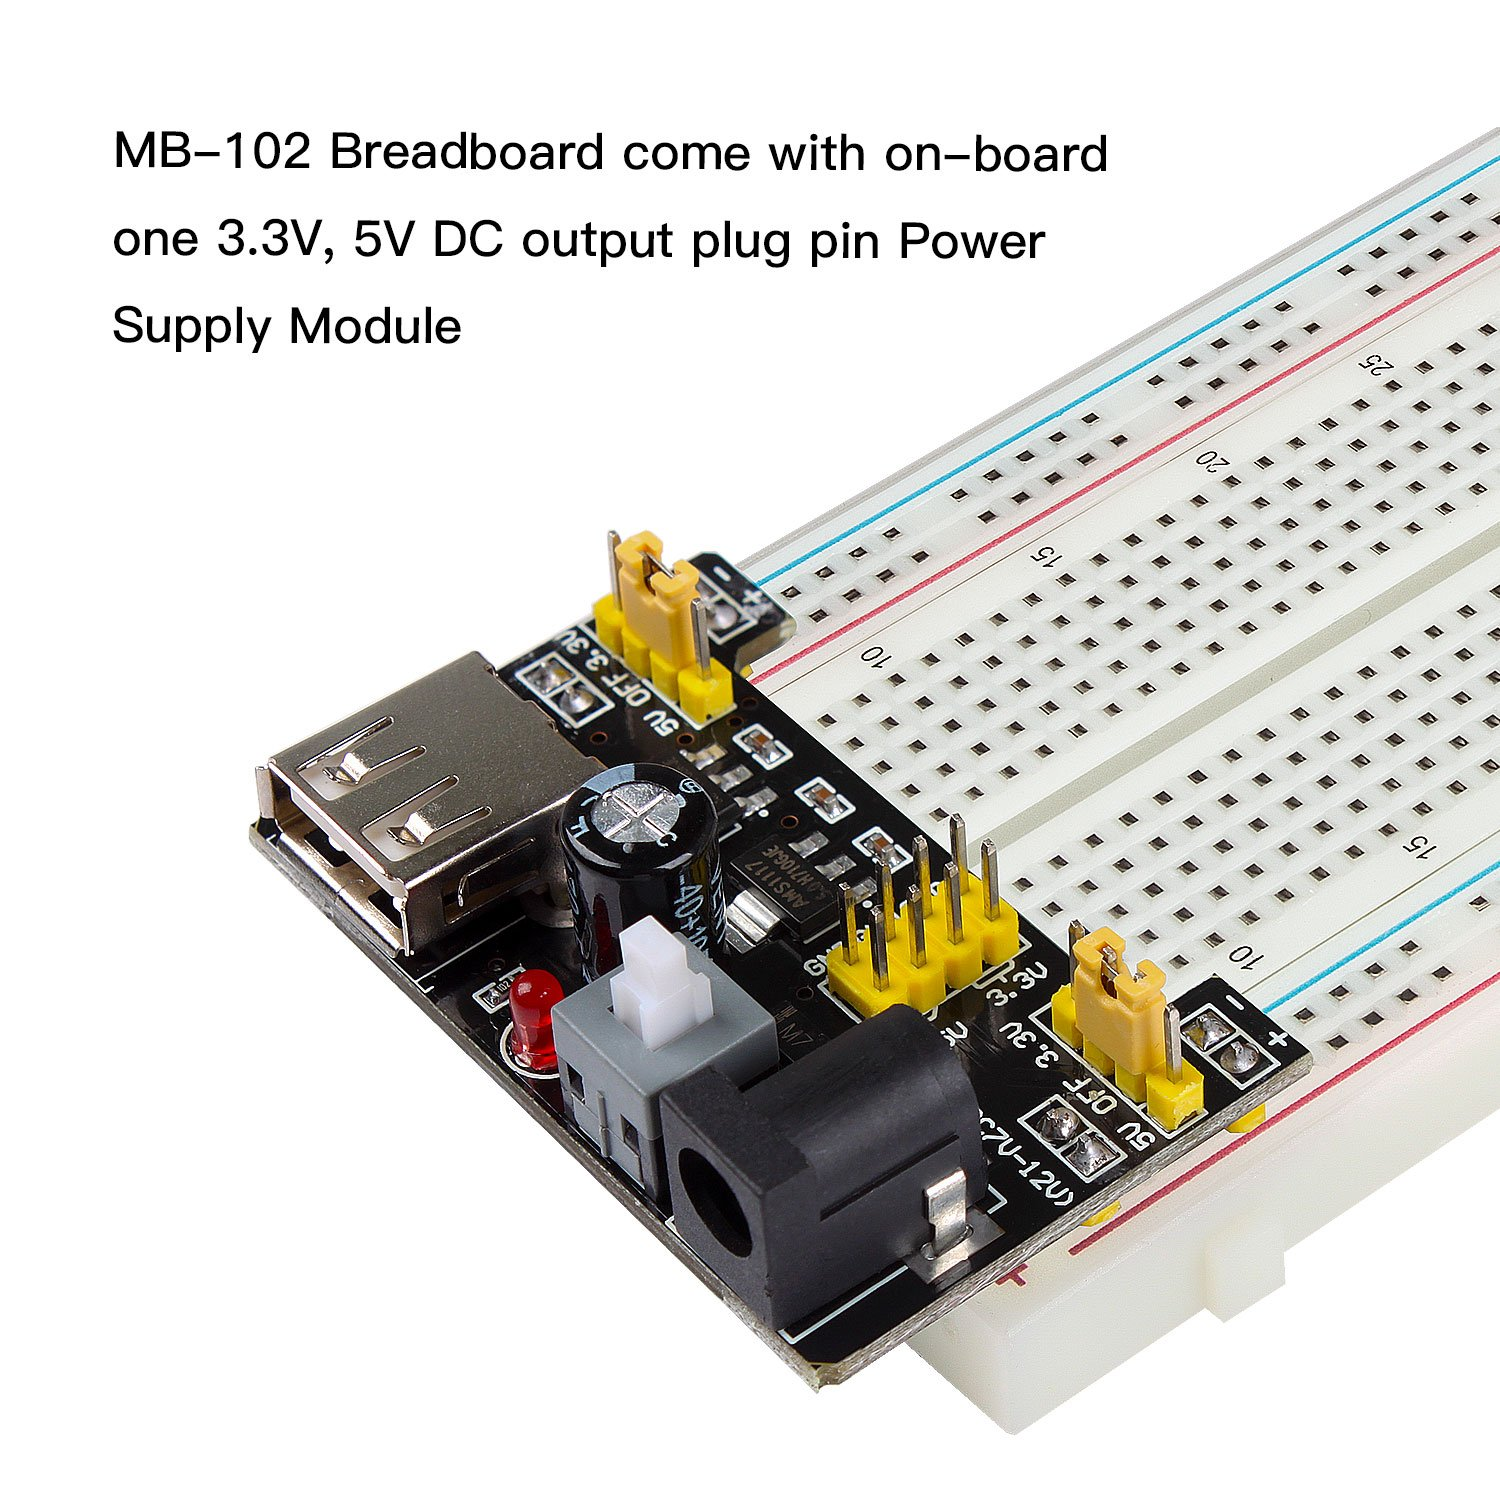 Smraza 33v 5v Power Supply Module For Arduino 830 Tie 12 Fixing The Breadboard On Site Points Solderless 65pcs Jumper Wire Uno Mega2560 Computers